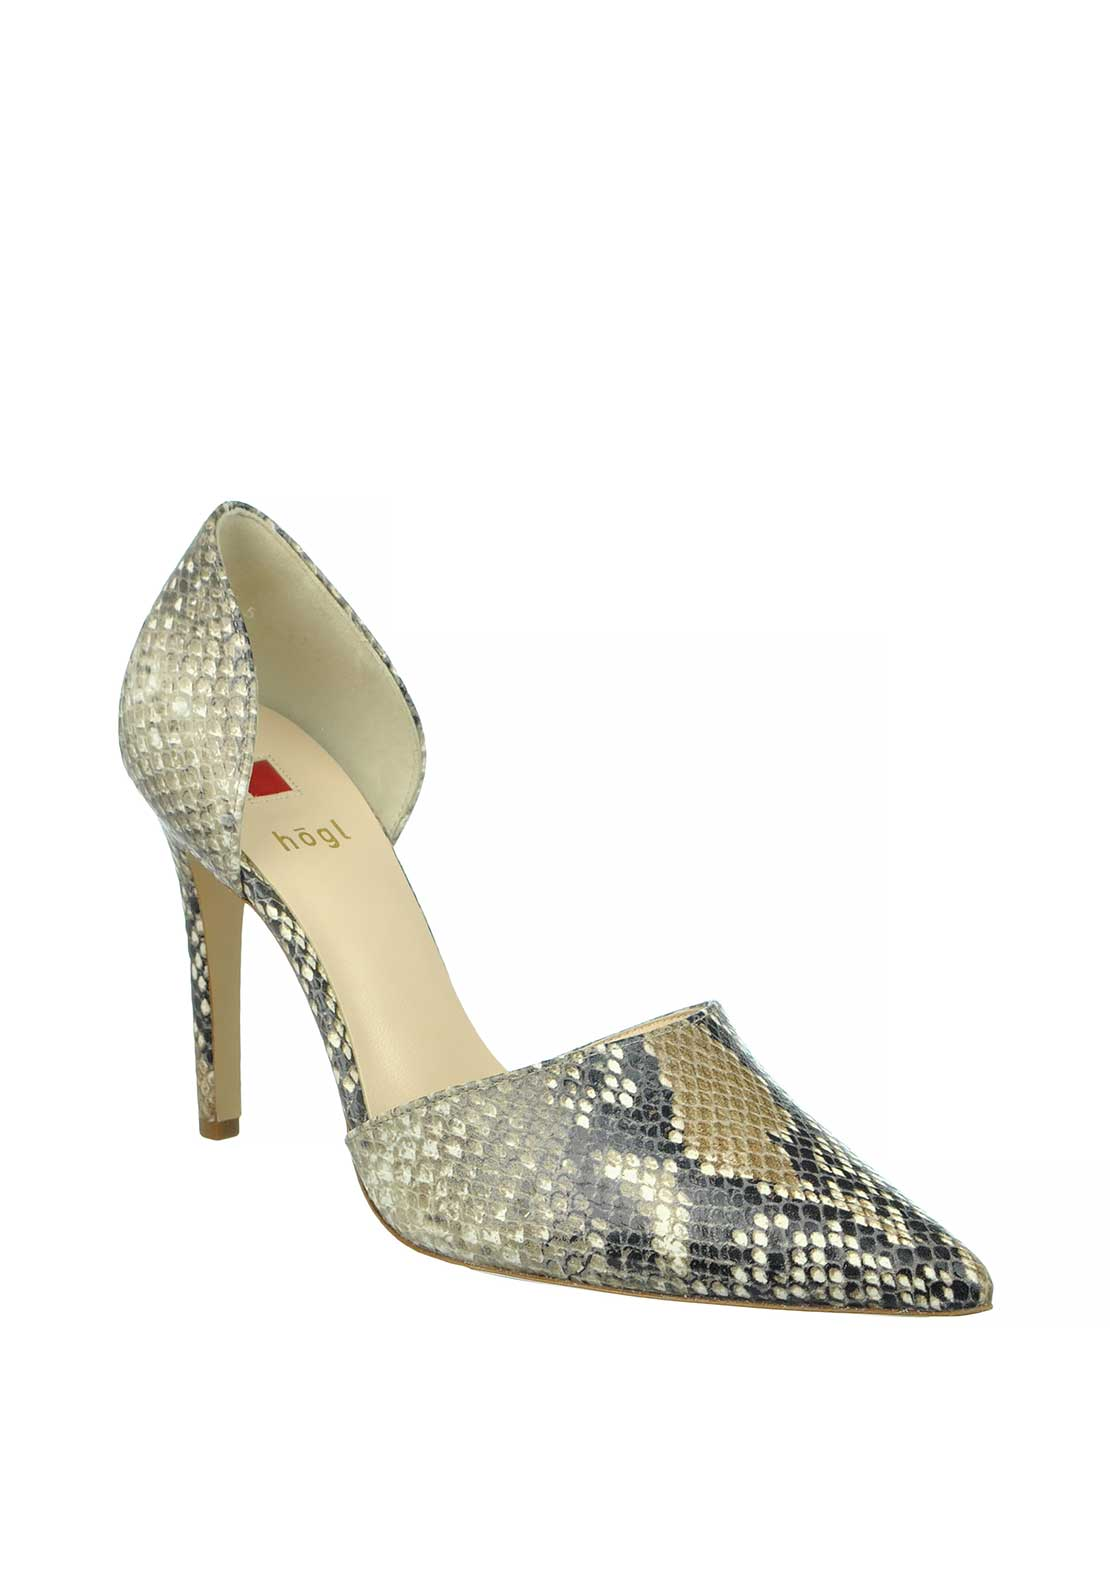 Hogl Leather Reptile Print Pointed Cut Out Heeled Court Shoes, Taupe